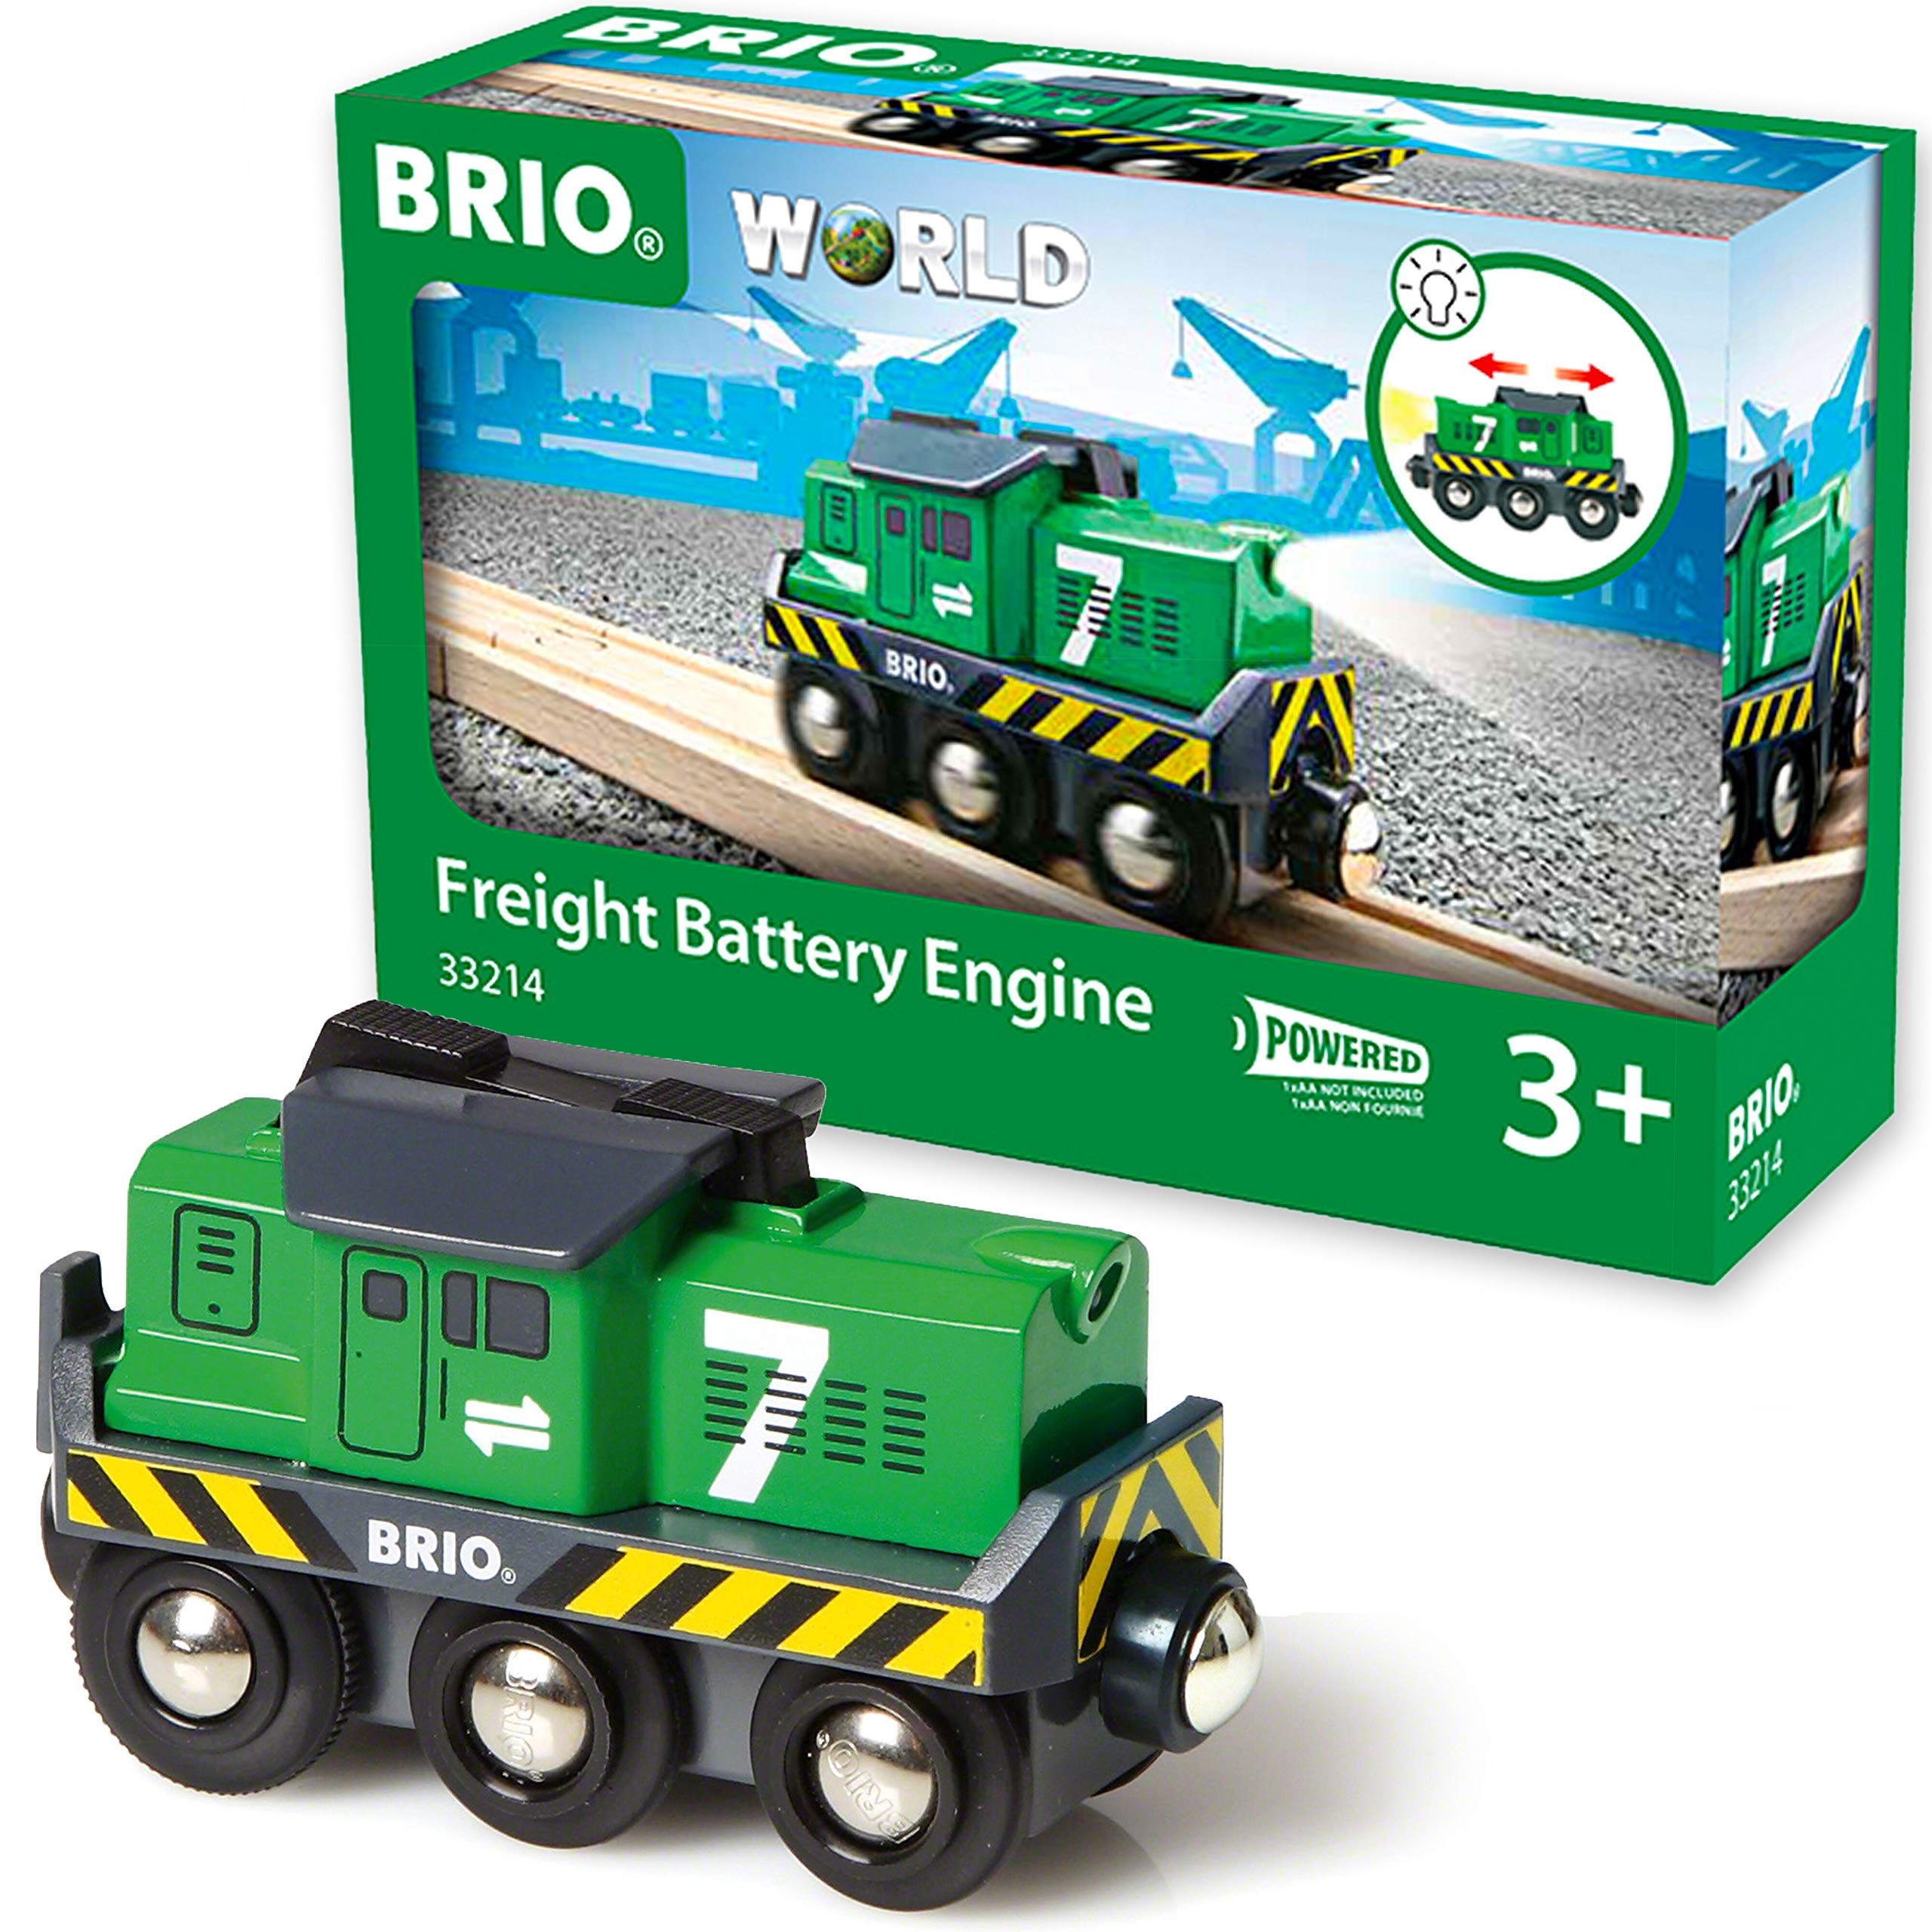 BRIO World 33214 - Freight Battery Engine - 1 Piece Wooden Toy Train Set for Kids Age 3 and Up